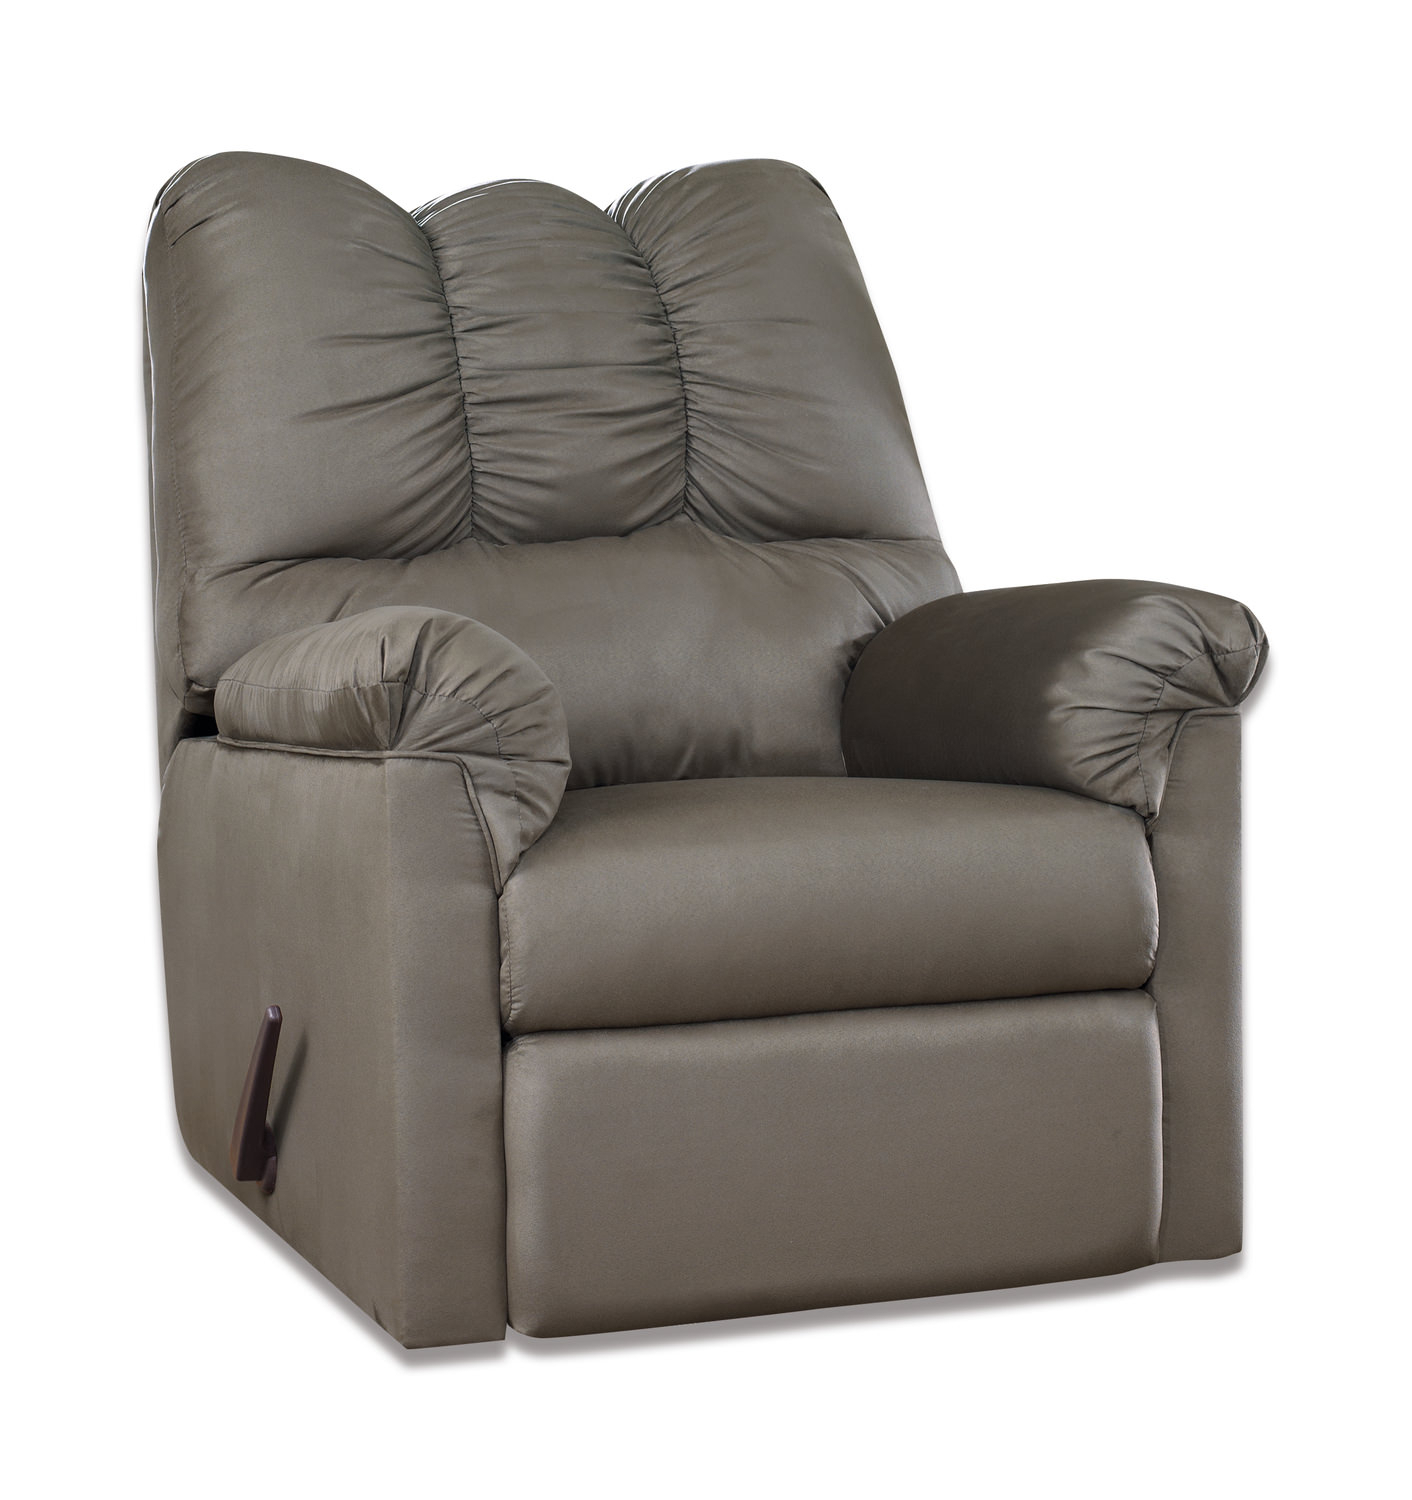 Recliners – Leather, Rocker & Swivel – Hom Furniture For Swivel Tobacco Leather Chairs (View 18 of 25)